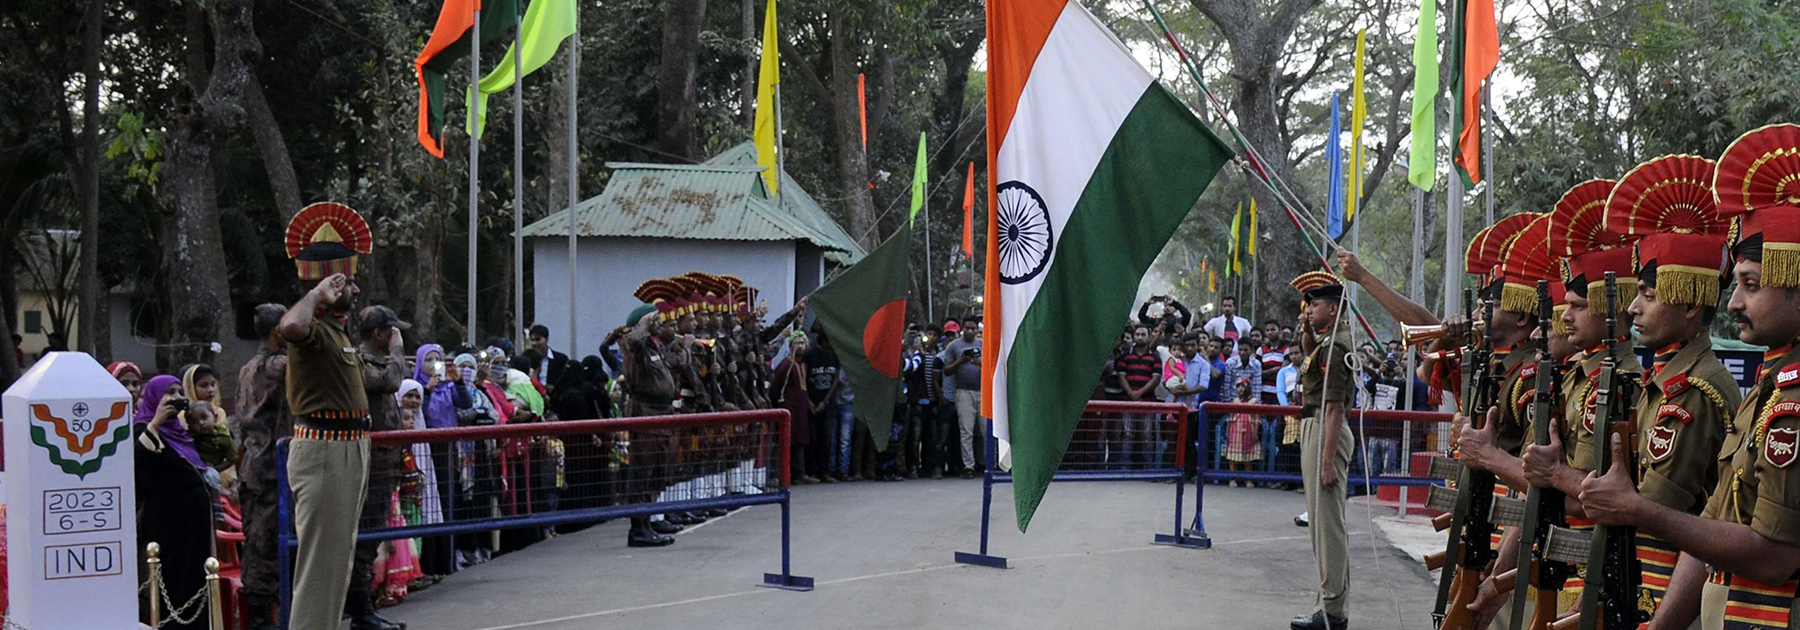 Indian Border Security Force (BSF) personnel during the Beating Retreat ceremony on the India Bangladesh border at Akhaura Integrated Checkpost in Agartala on February 14, 2017. (ARINDAM DEY/AFP/Getty Images)